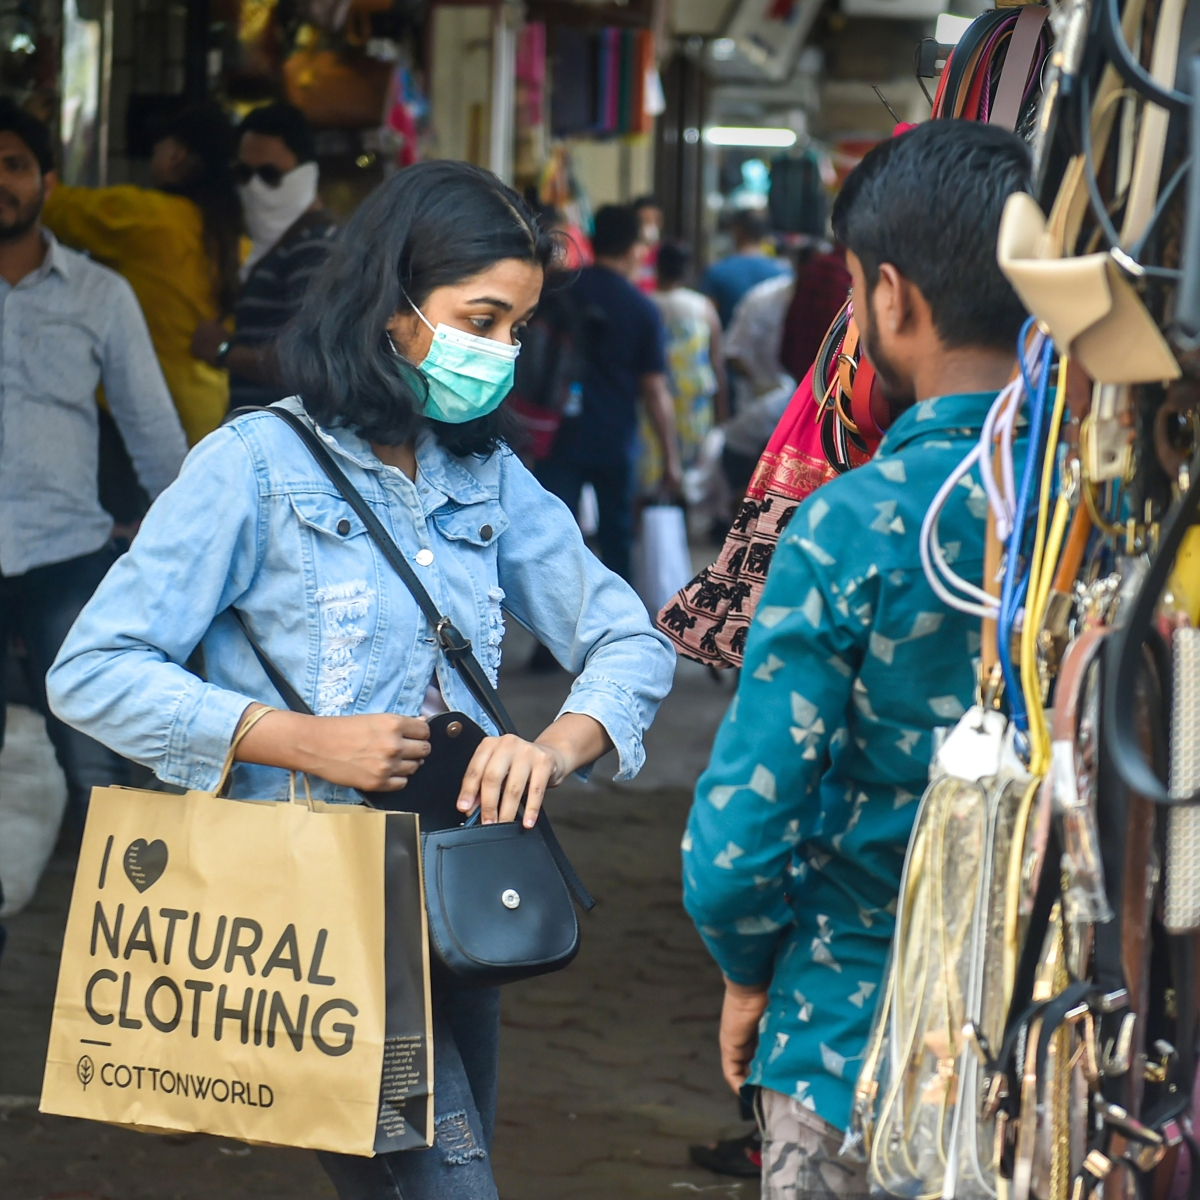 Coronavirus in Mumbai: Only nine of 24 wards in city have more than 1,000 patients, says report